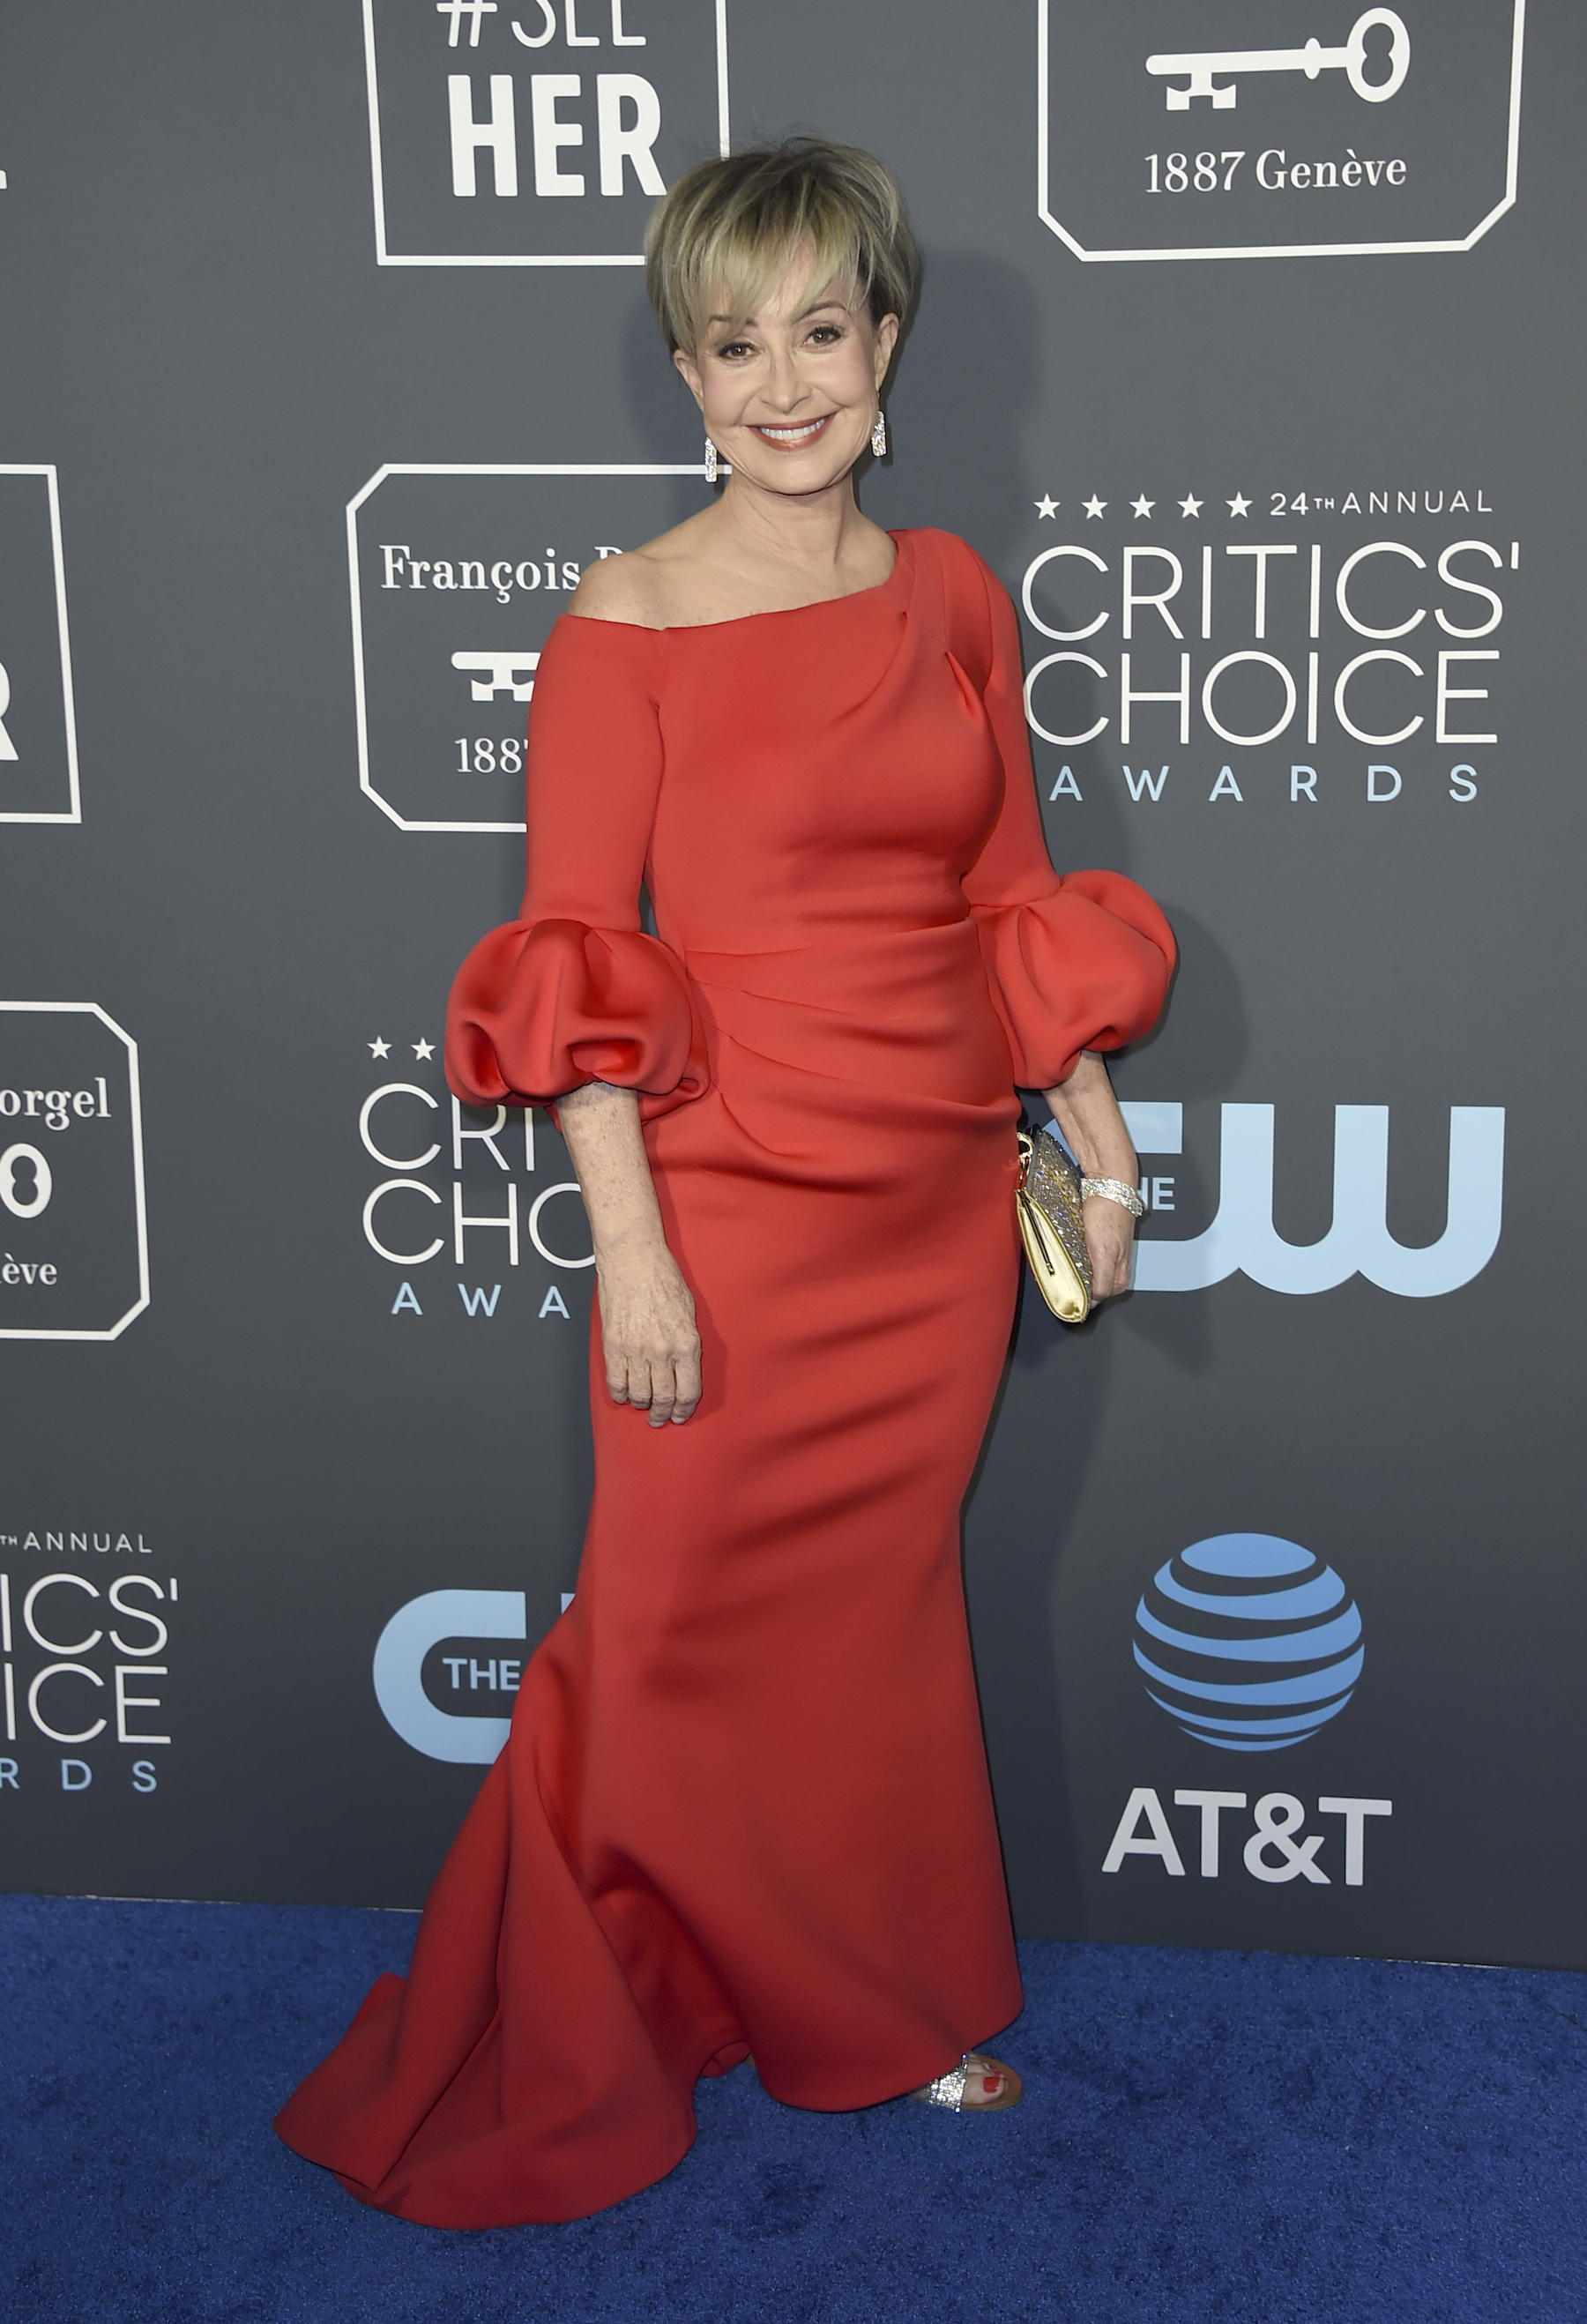 "<div class=""meta image-caption""><div class=""origin-logo origin-image ap""><span>AP</span></div><span class=""caption-text"">Annie Potts arrives at the 24th annual Critics' Choice Awards on Sunday, Jan. 13, 2019, at the Barker Hangar in Santa Monica, Calif. (Jordan Strauss/Invision/AP)</span></div>"